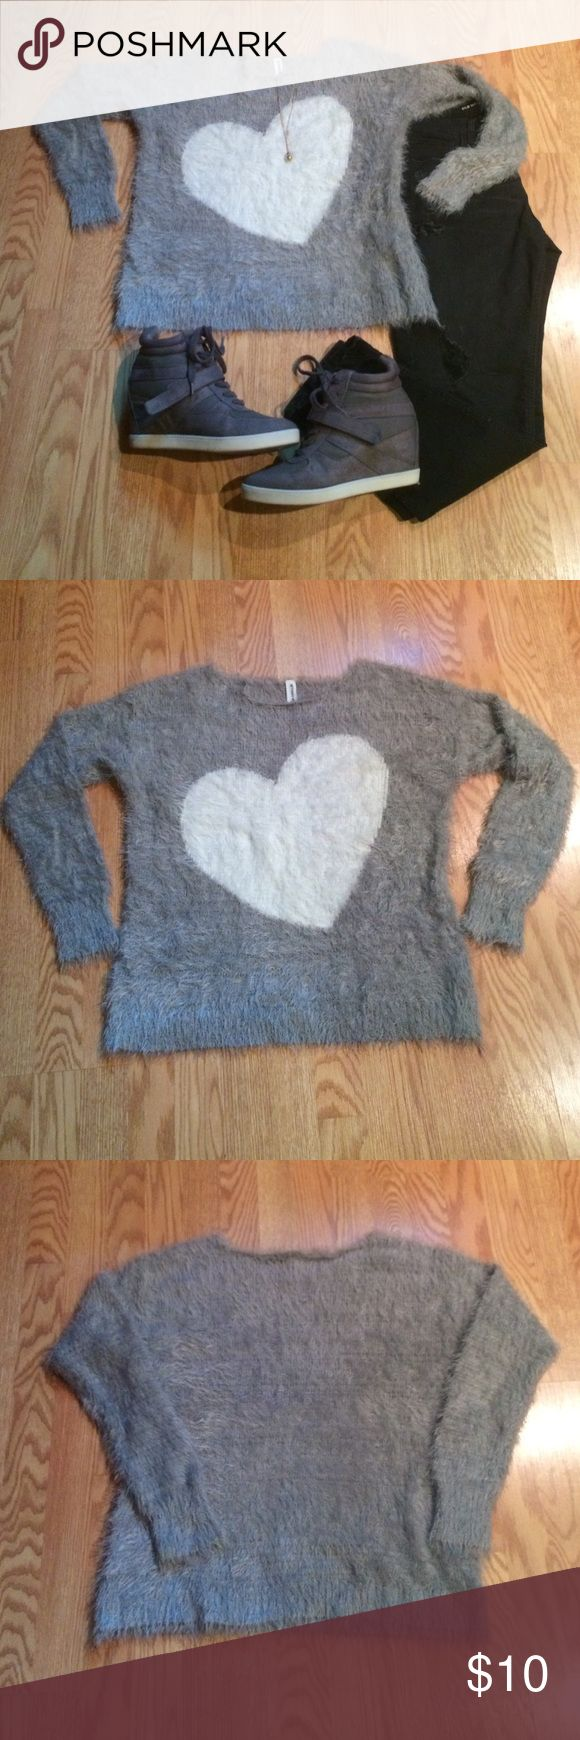 "Cropped Heart Sweater by Bethany Mota Darling Cropped Heart Sweater by Bethany Mita for Aeropostale. 64% nylon, 28% acrylic, 1% other fiber. Machine washable, tumble dry low. 21"" long. Aeropostale Sweaters Crew & Scoop Necks"